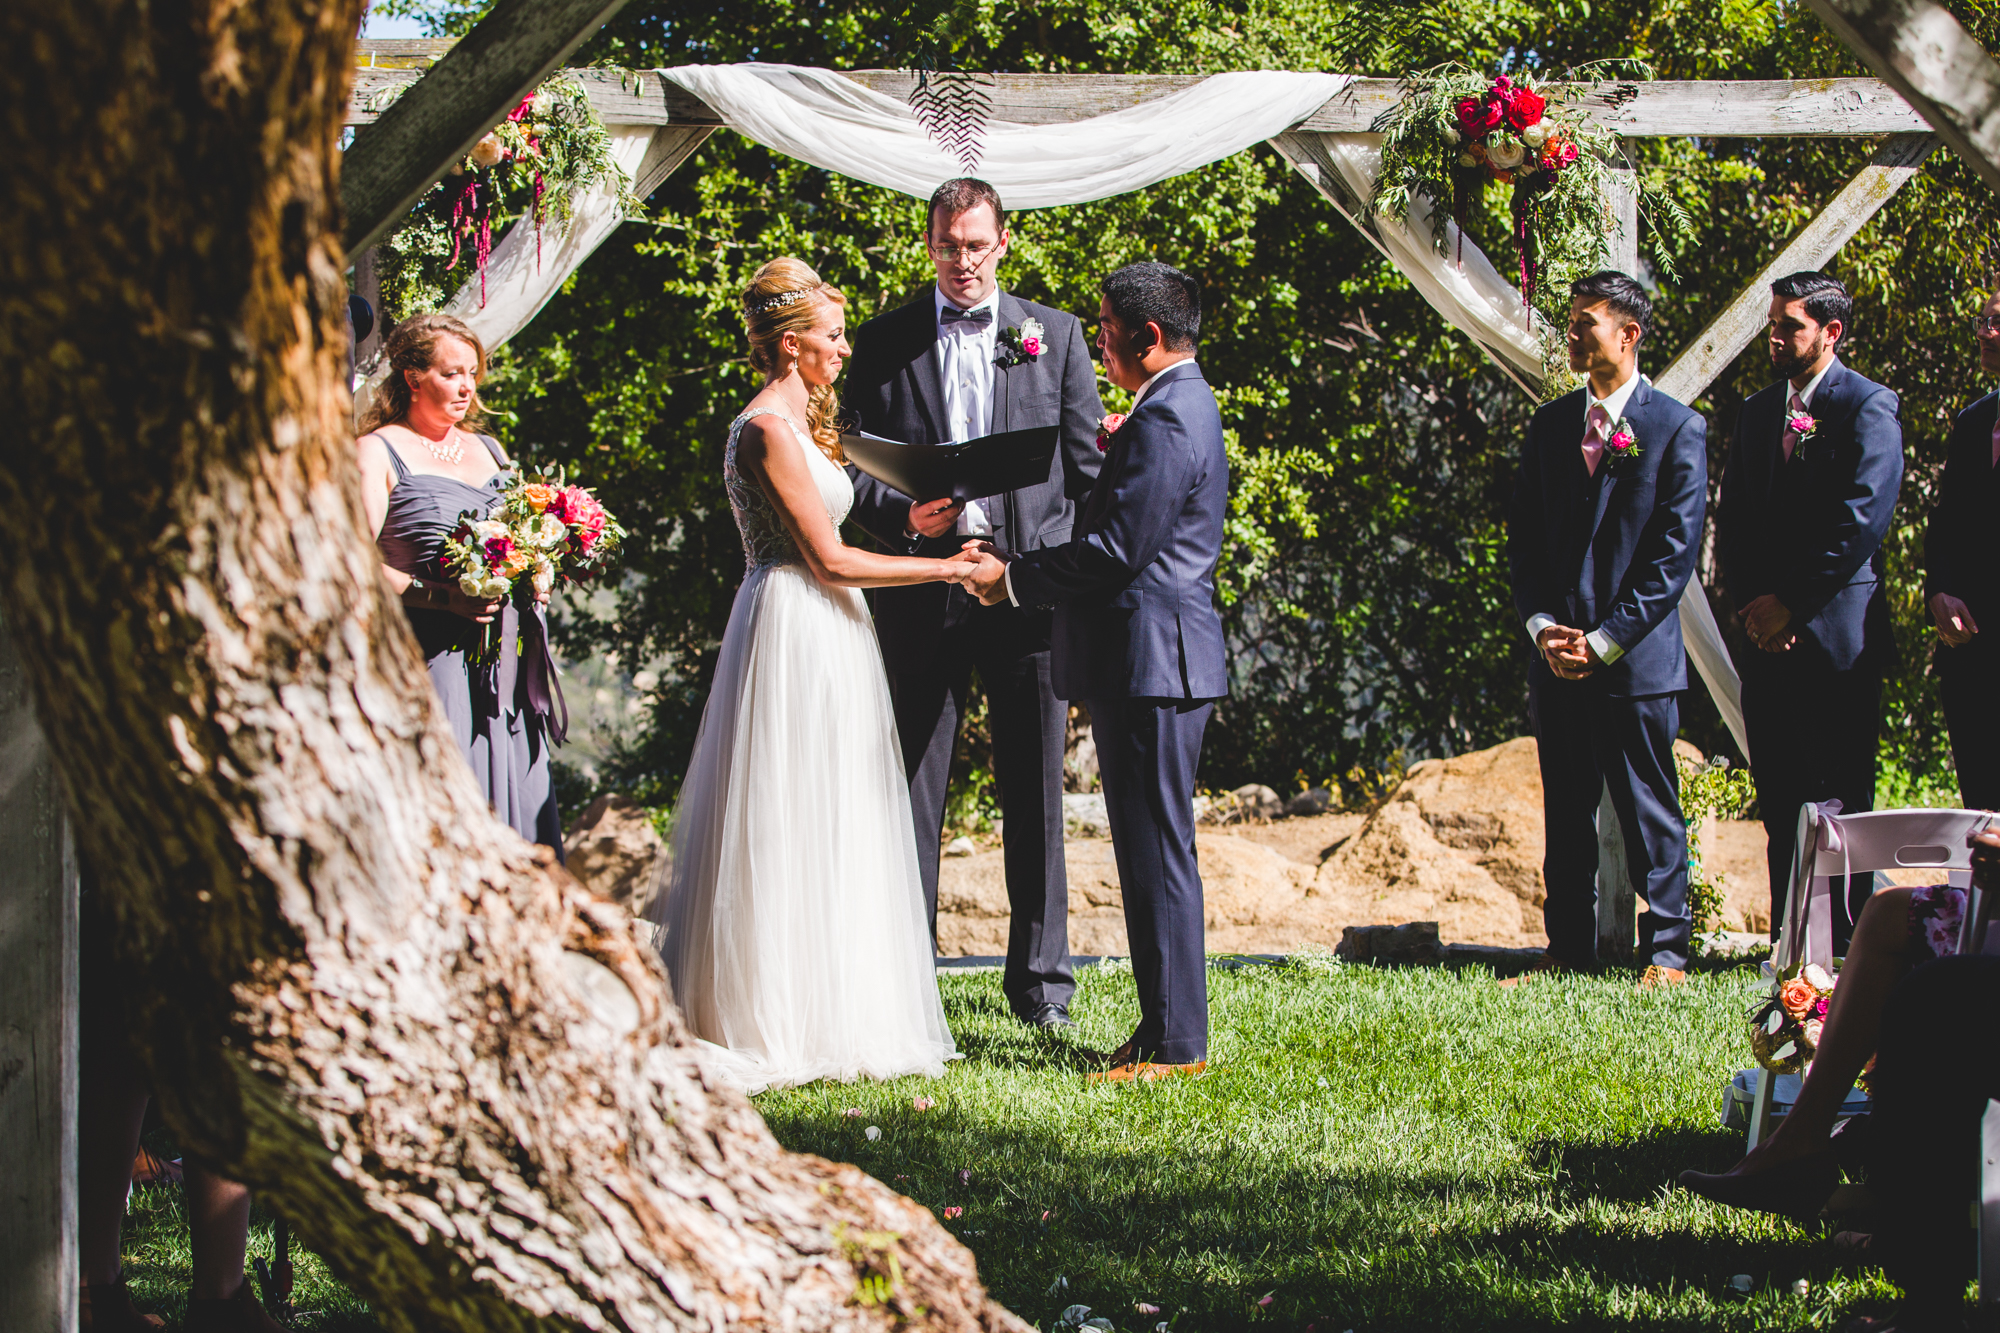 sd wedding-24.jpg